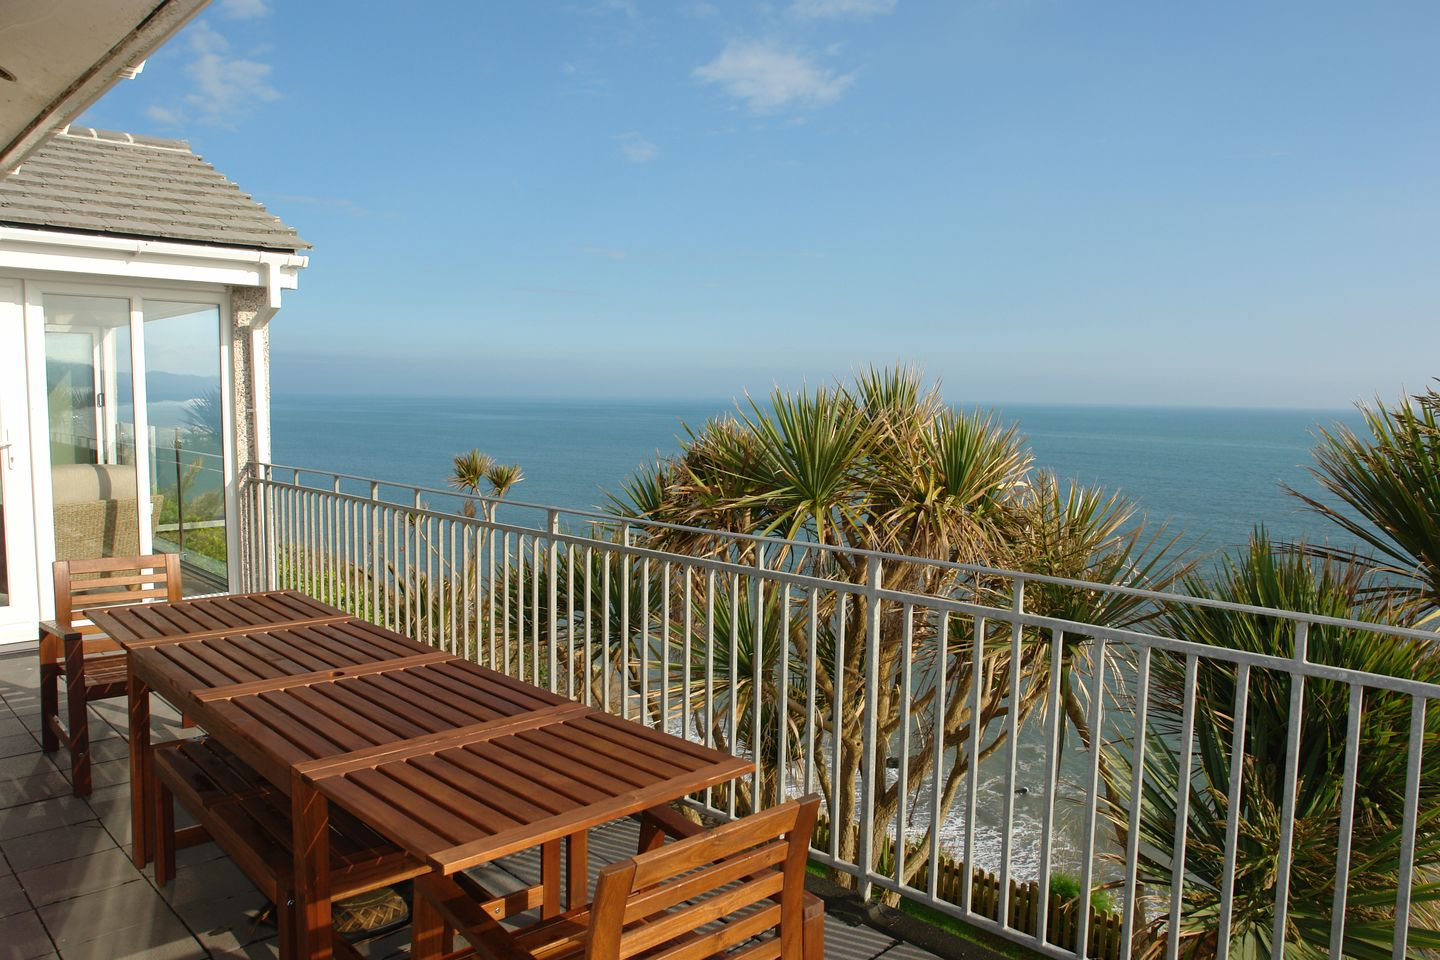 Beach Belle Downderry Balcony With Furniture